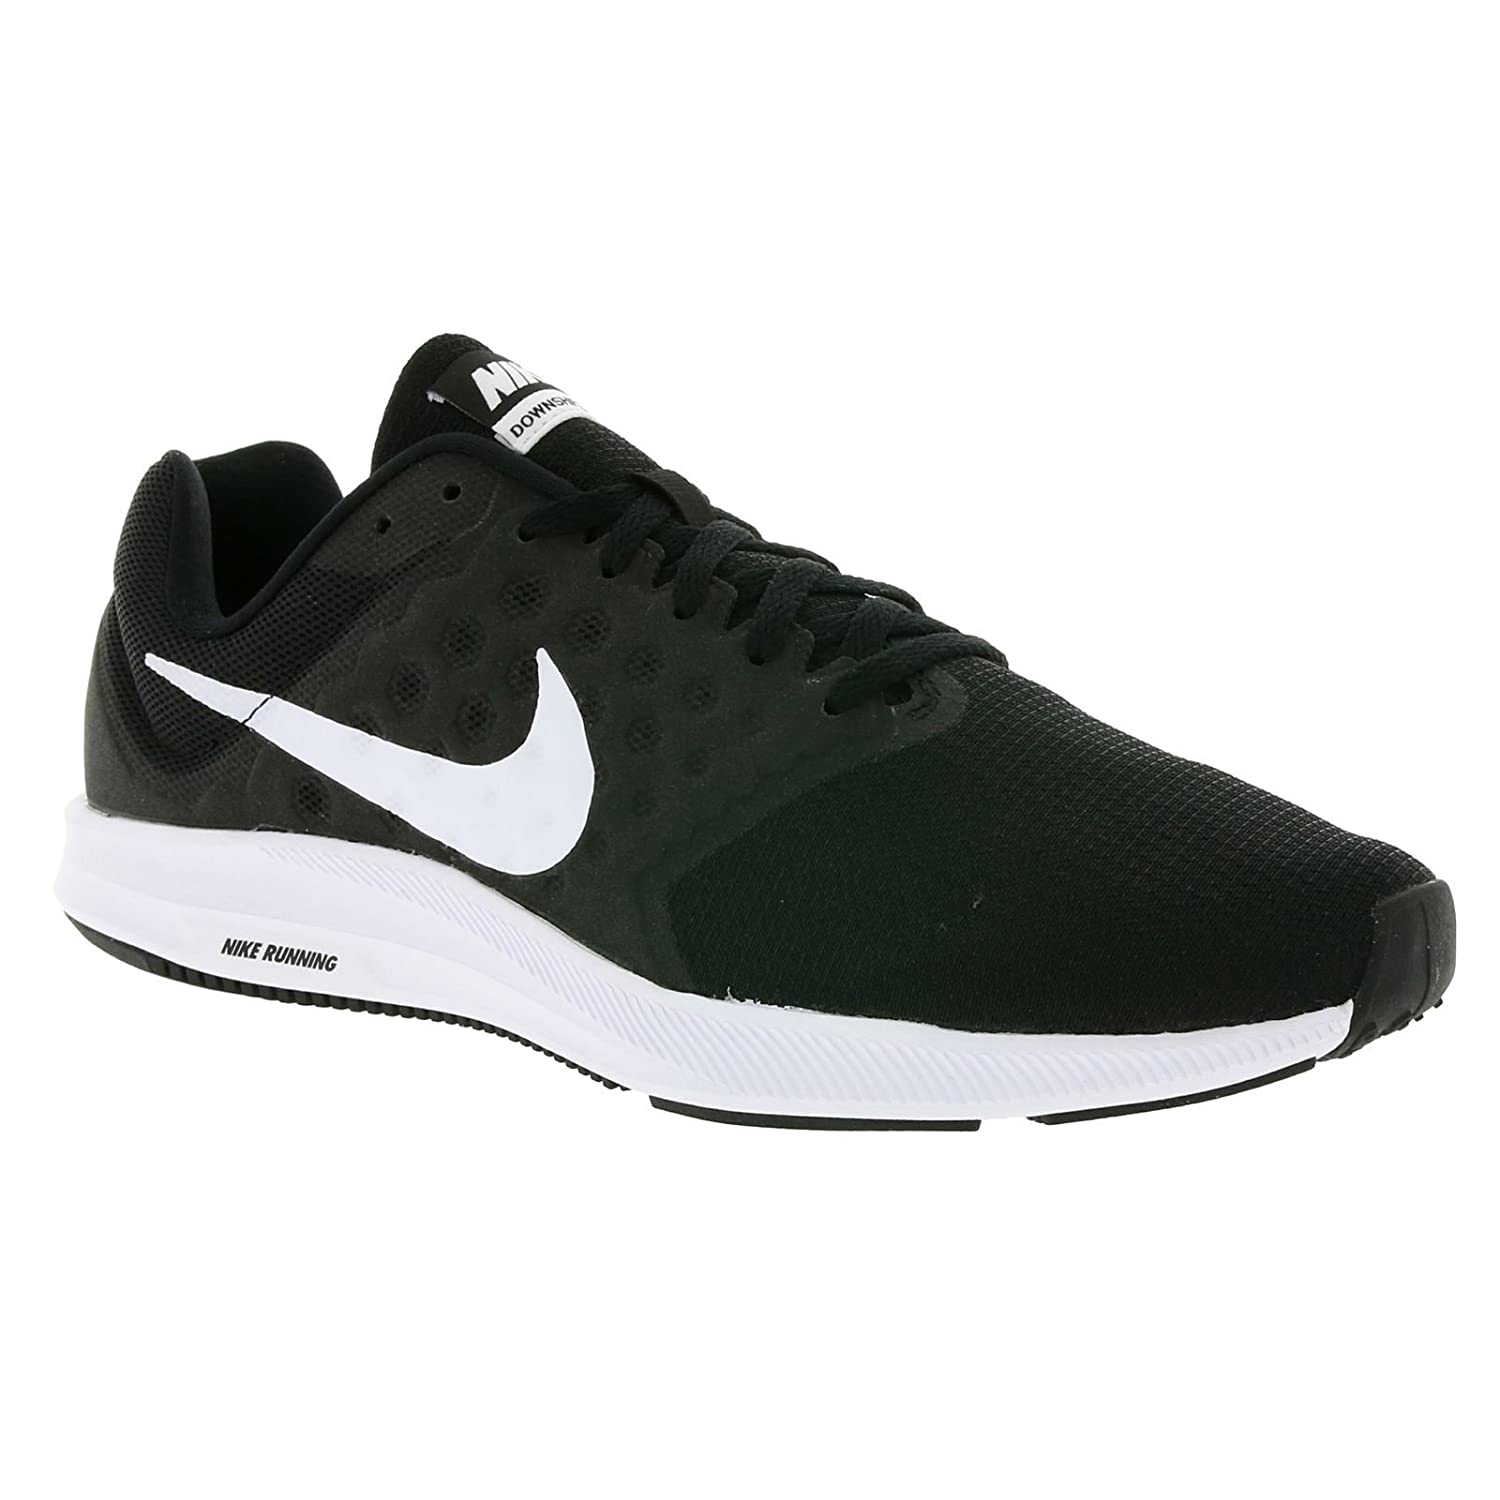 e83c26d3f Nike Men's Downshifter 7 Black/White Running Shoes-10 UK 45 Euro  (852459-002-BLACK/WHITE-10): Buy Online at Low Prices in India - Amazon.in